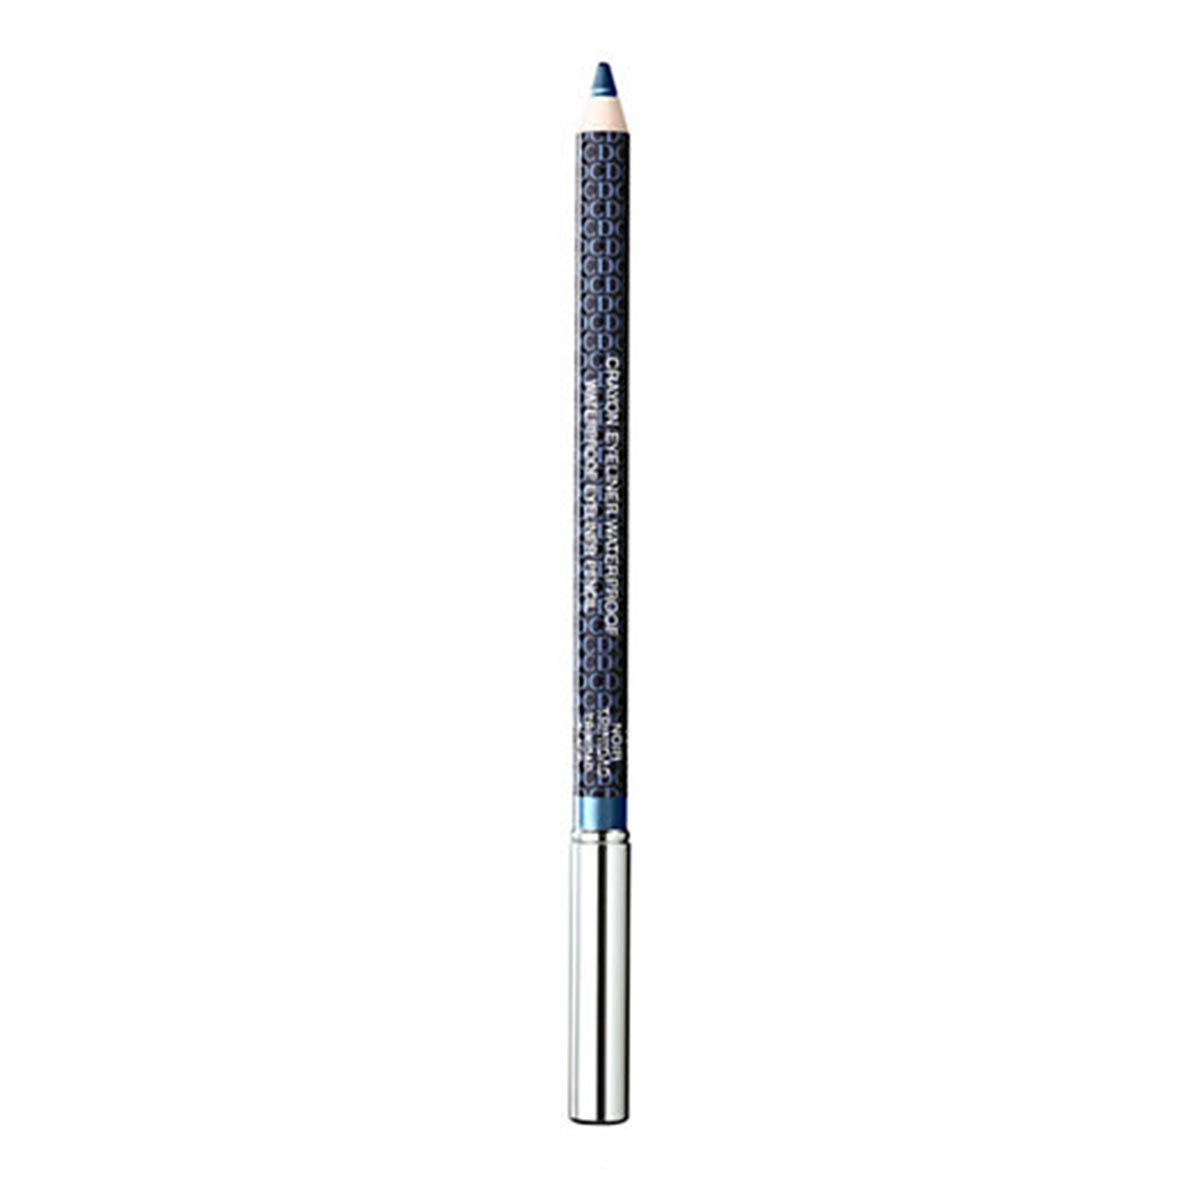 Dior eyeliner waterproof 254